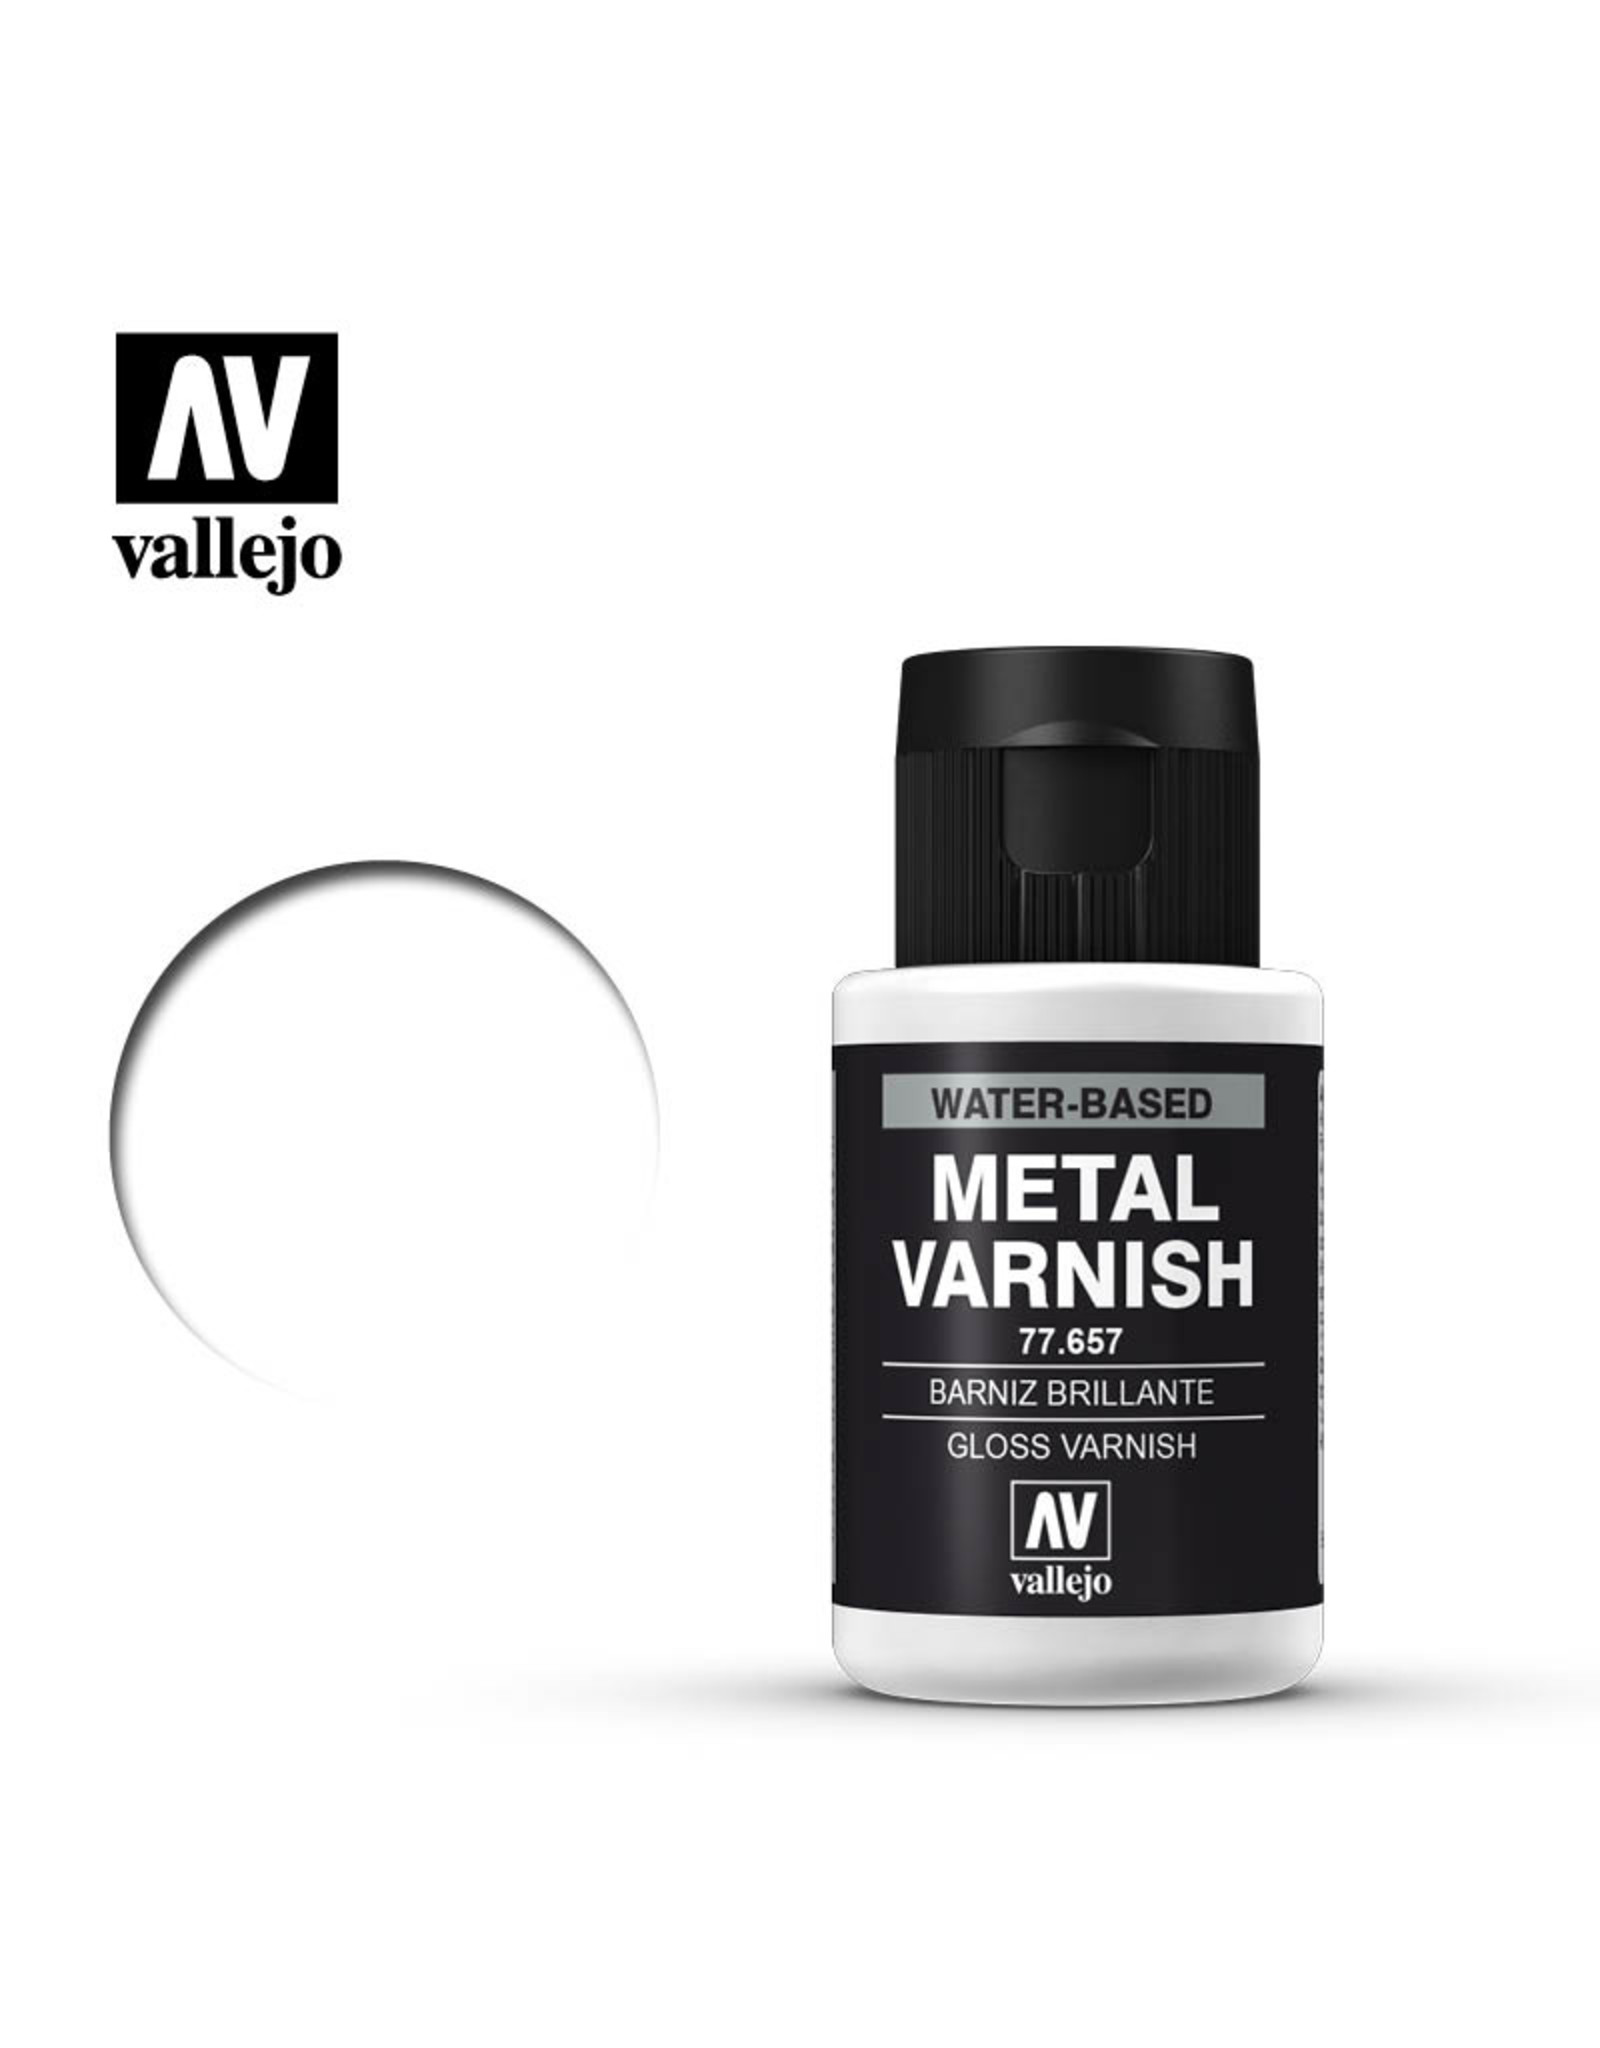 Vallejo Vallejo Varnish Line